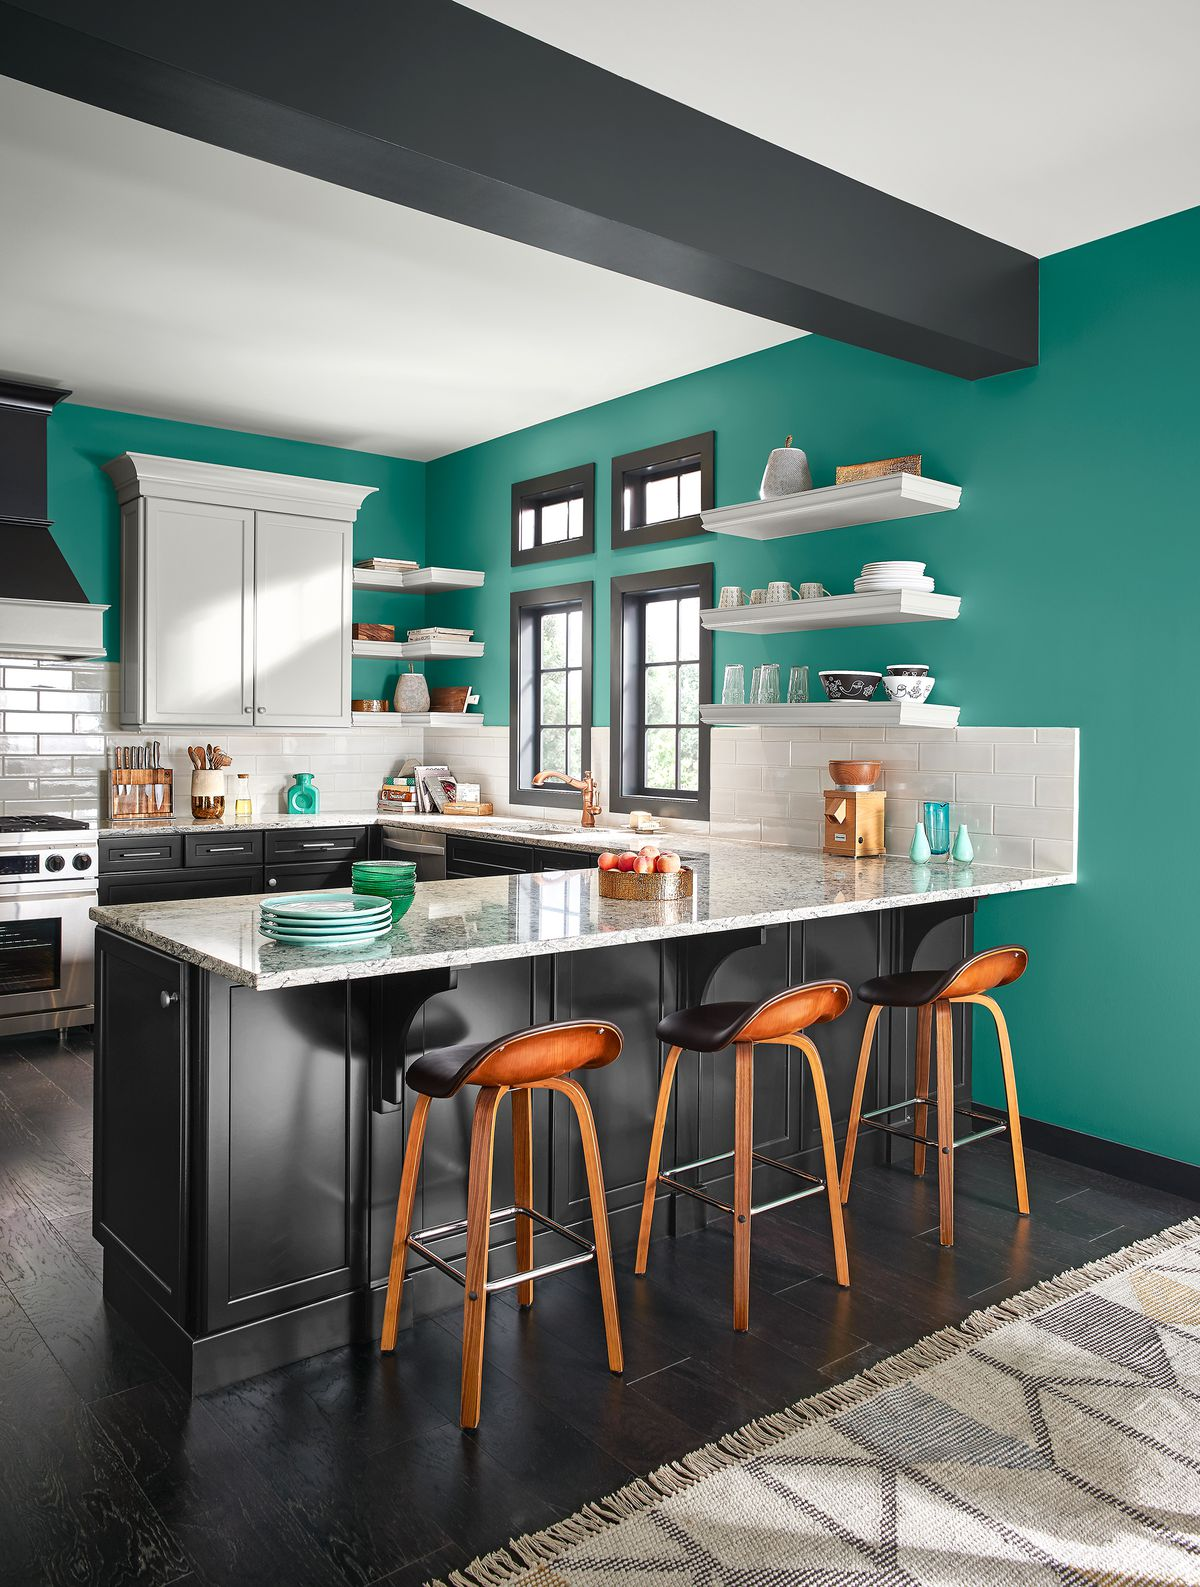 Mid-Century Home With Turquoise Interior And White Ceilings In Kitchen